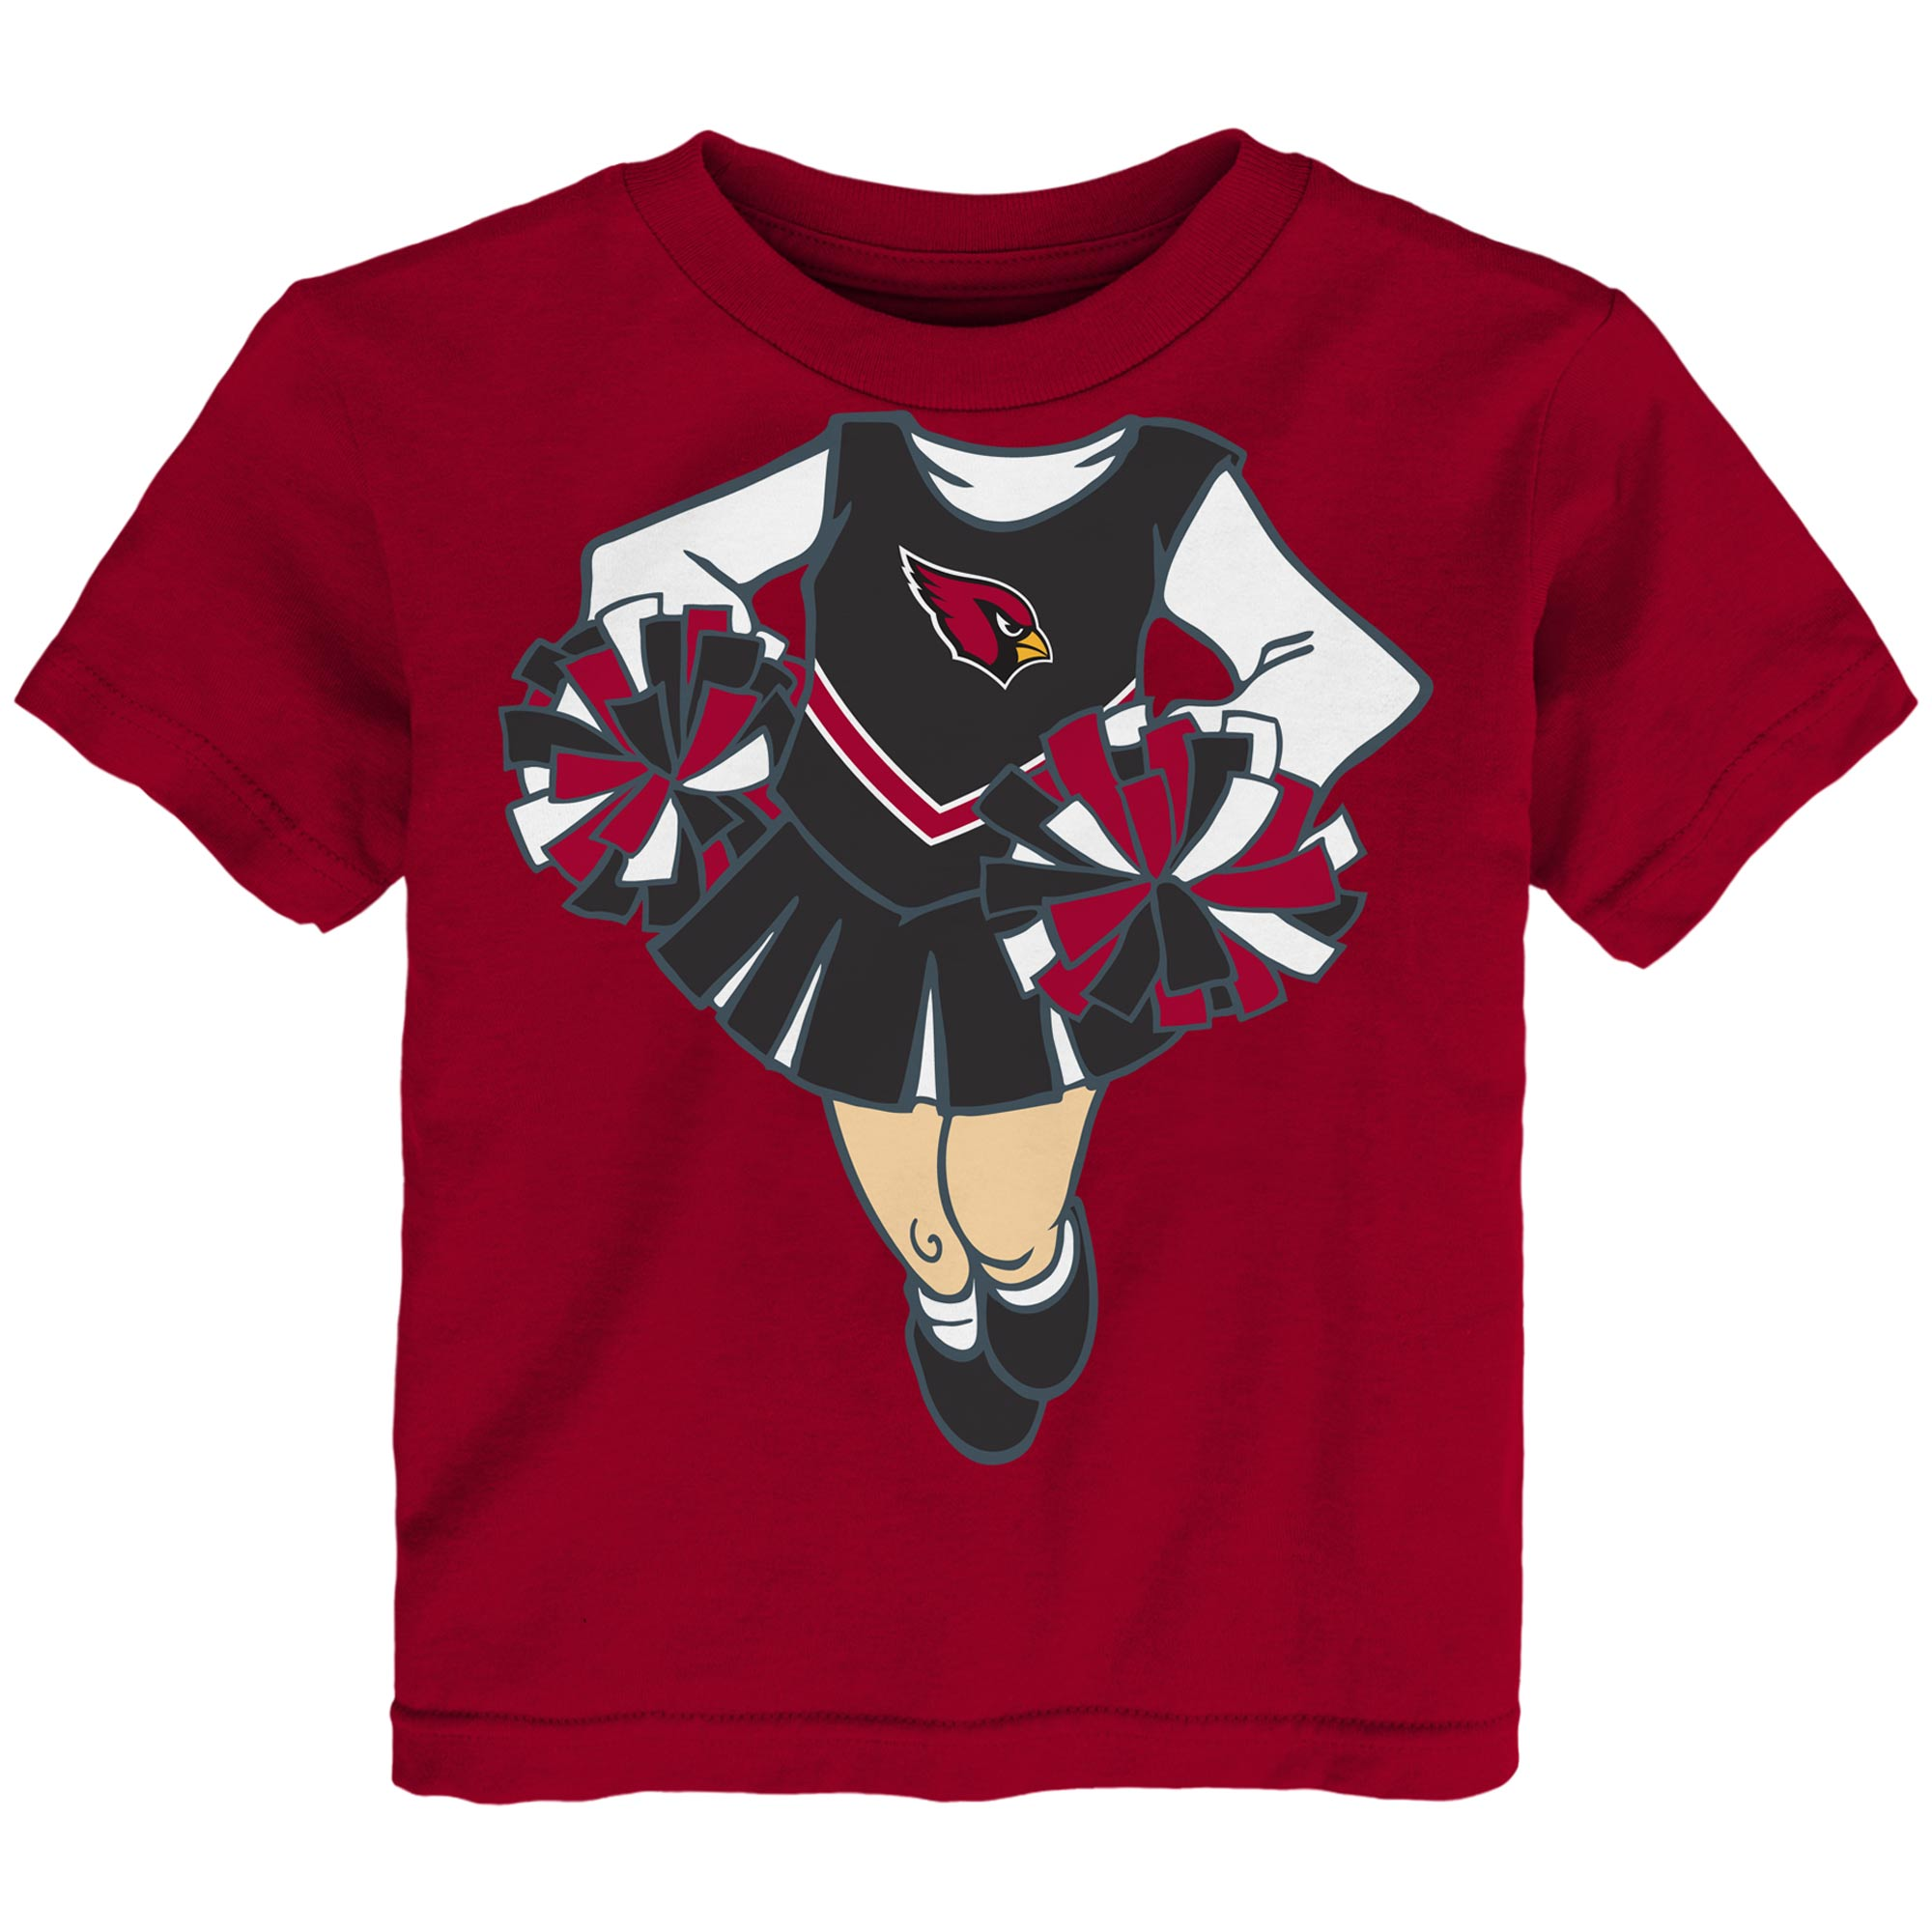 Arizona Cardinals Girls Toddler Cheerleader Dreams T-Shirt - Cardinal